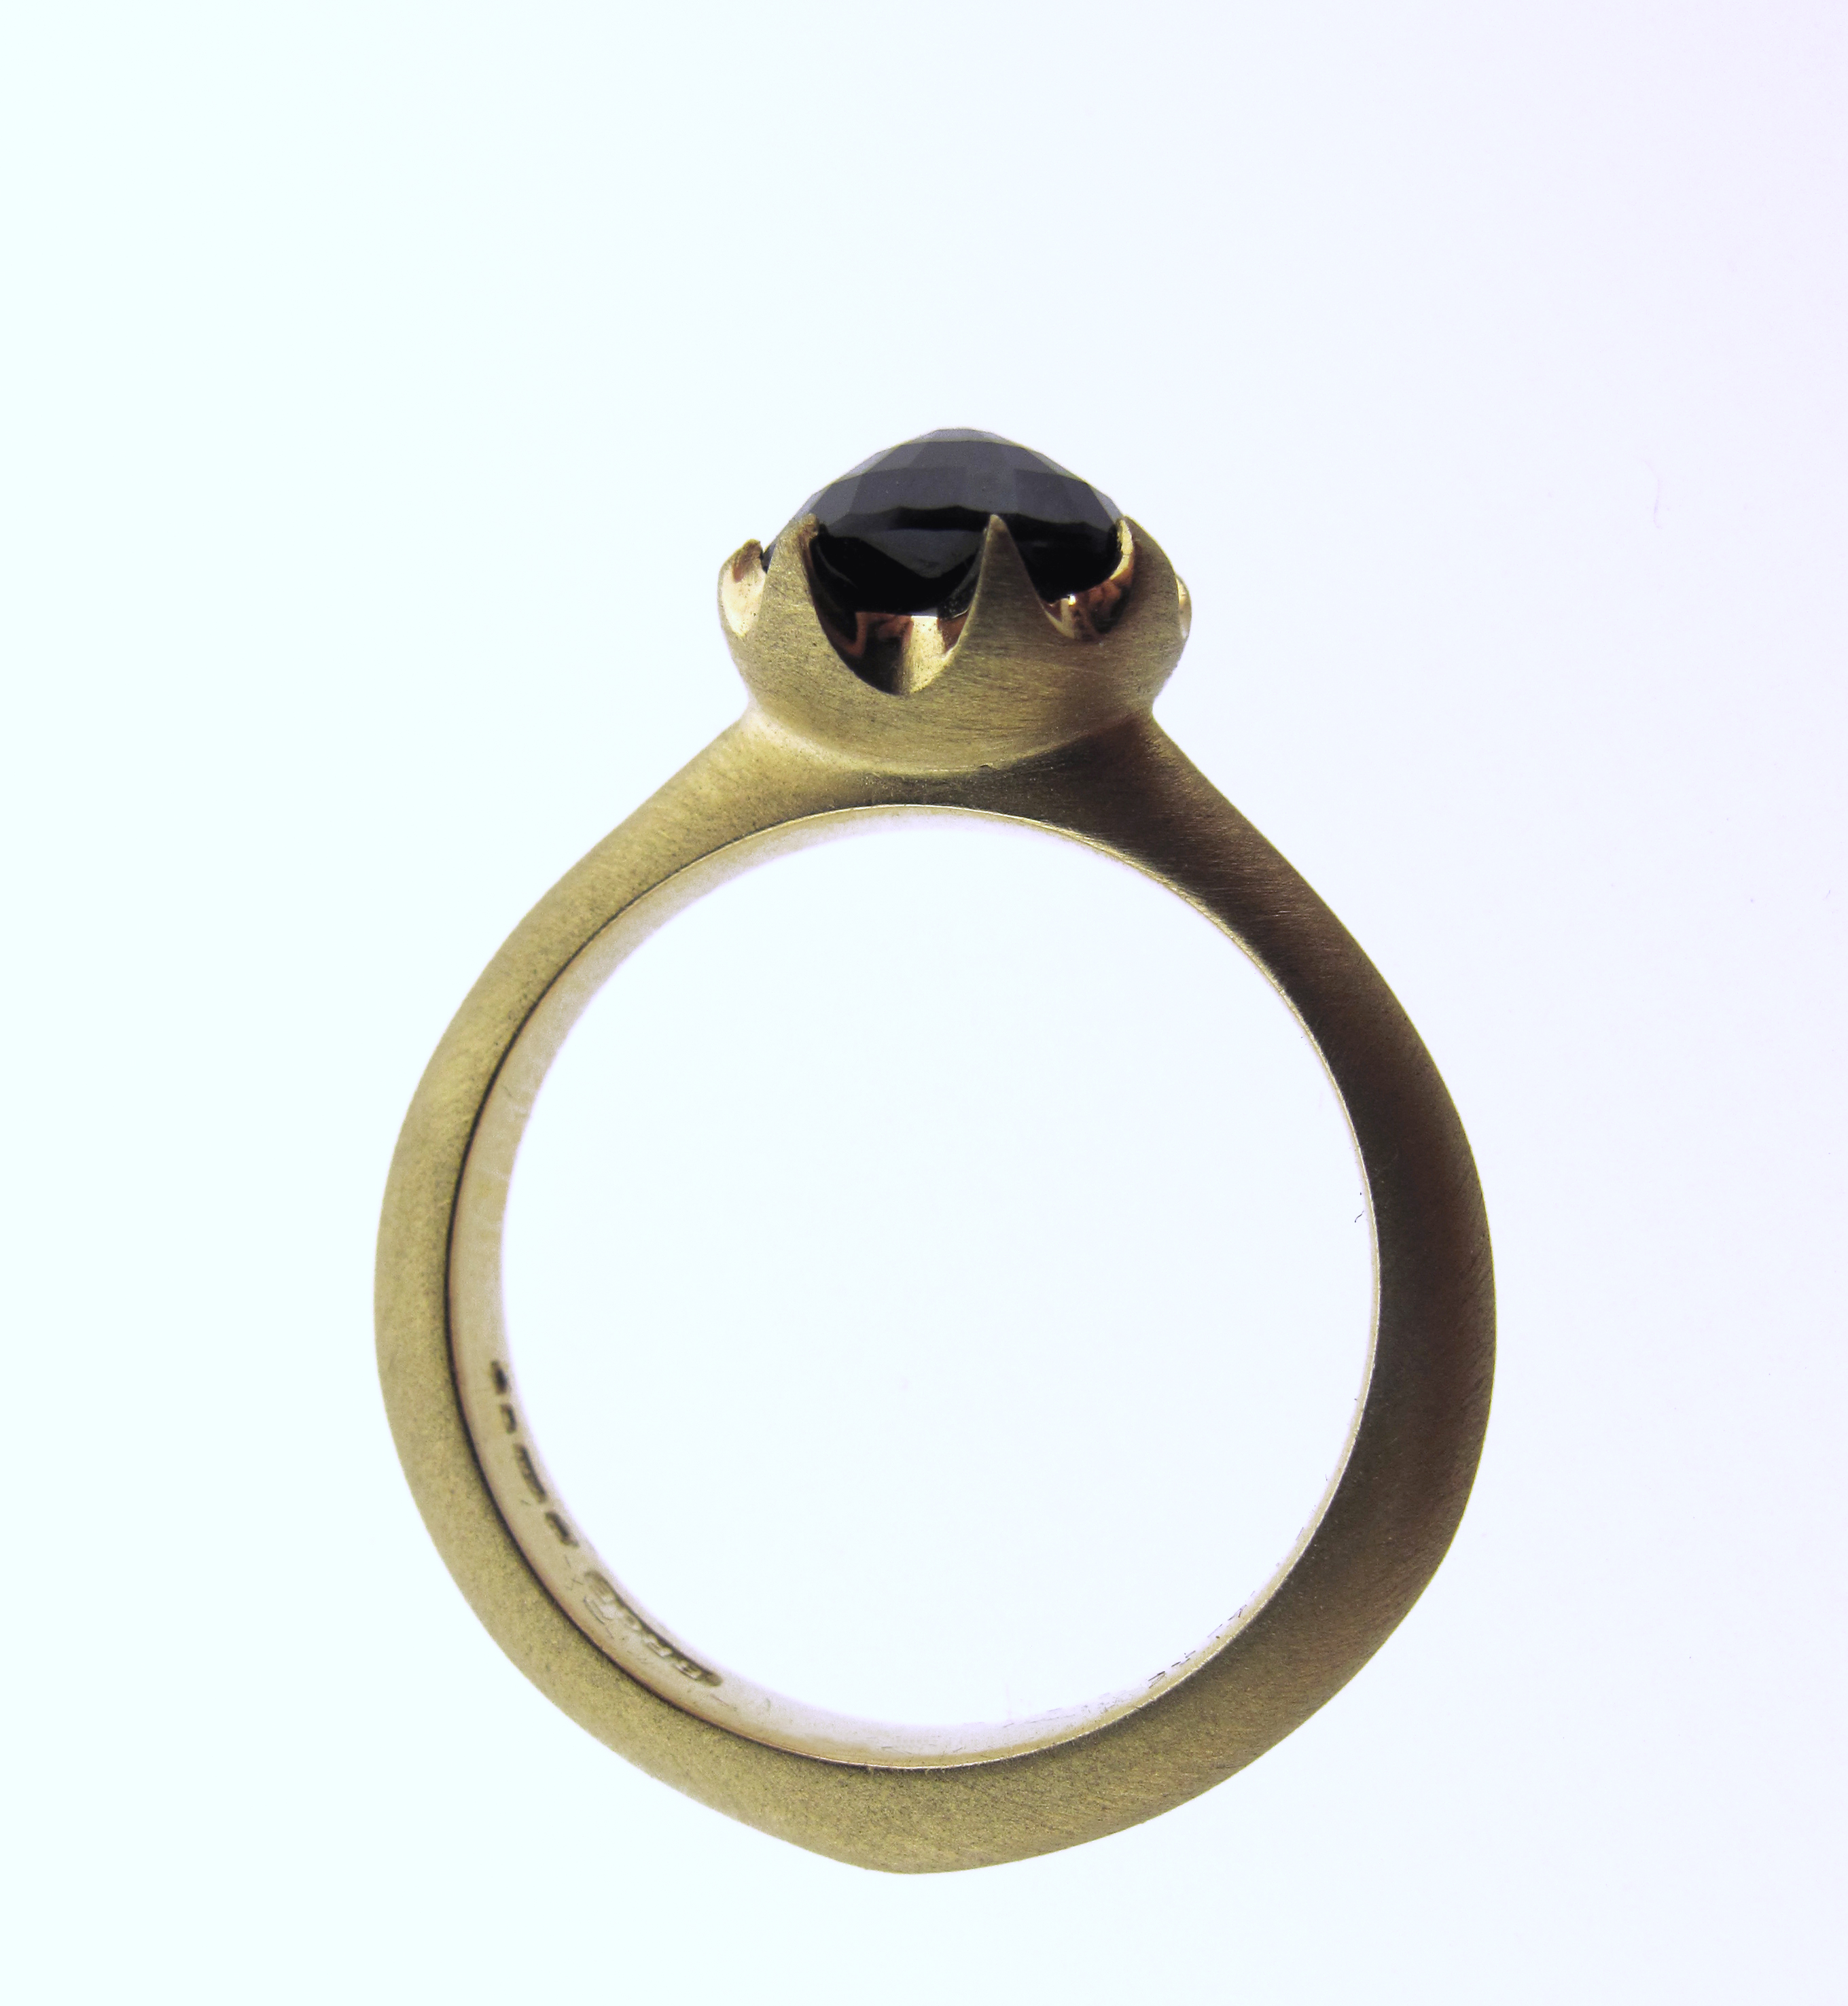 in gold with lyst product gallery jewelry icon normal corundum studs gucci and yellow black rings ring